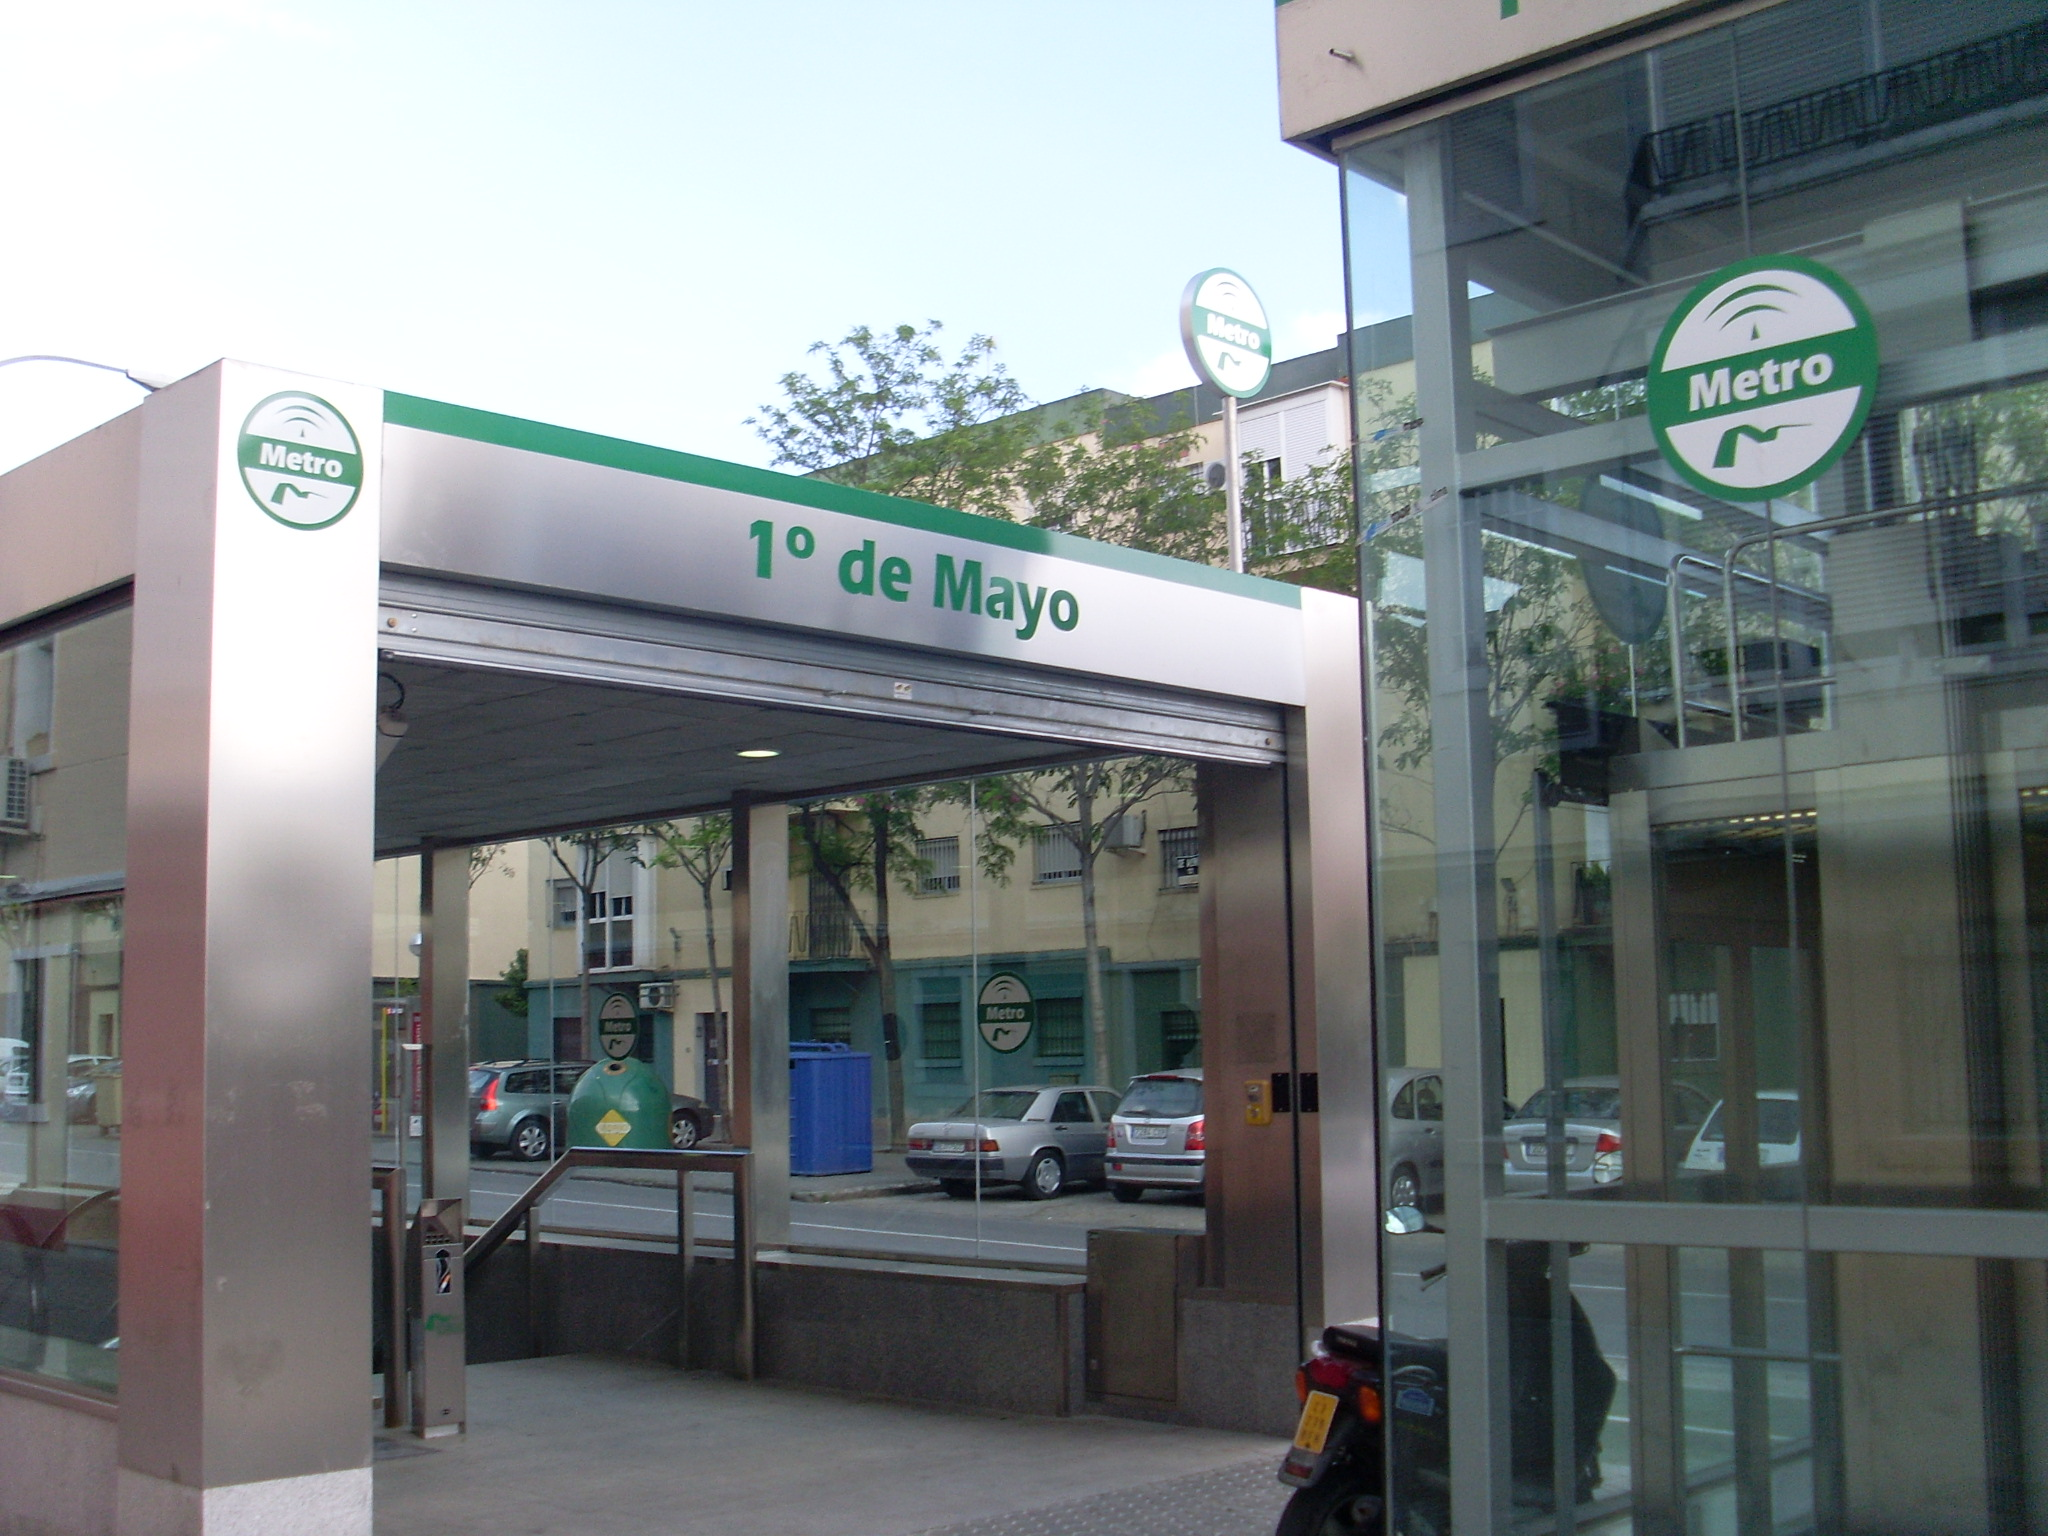 1º de Mayo Station of the Seville Metro.